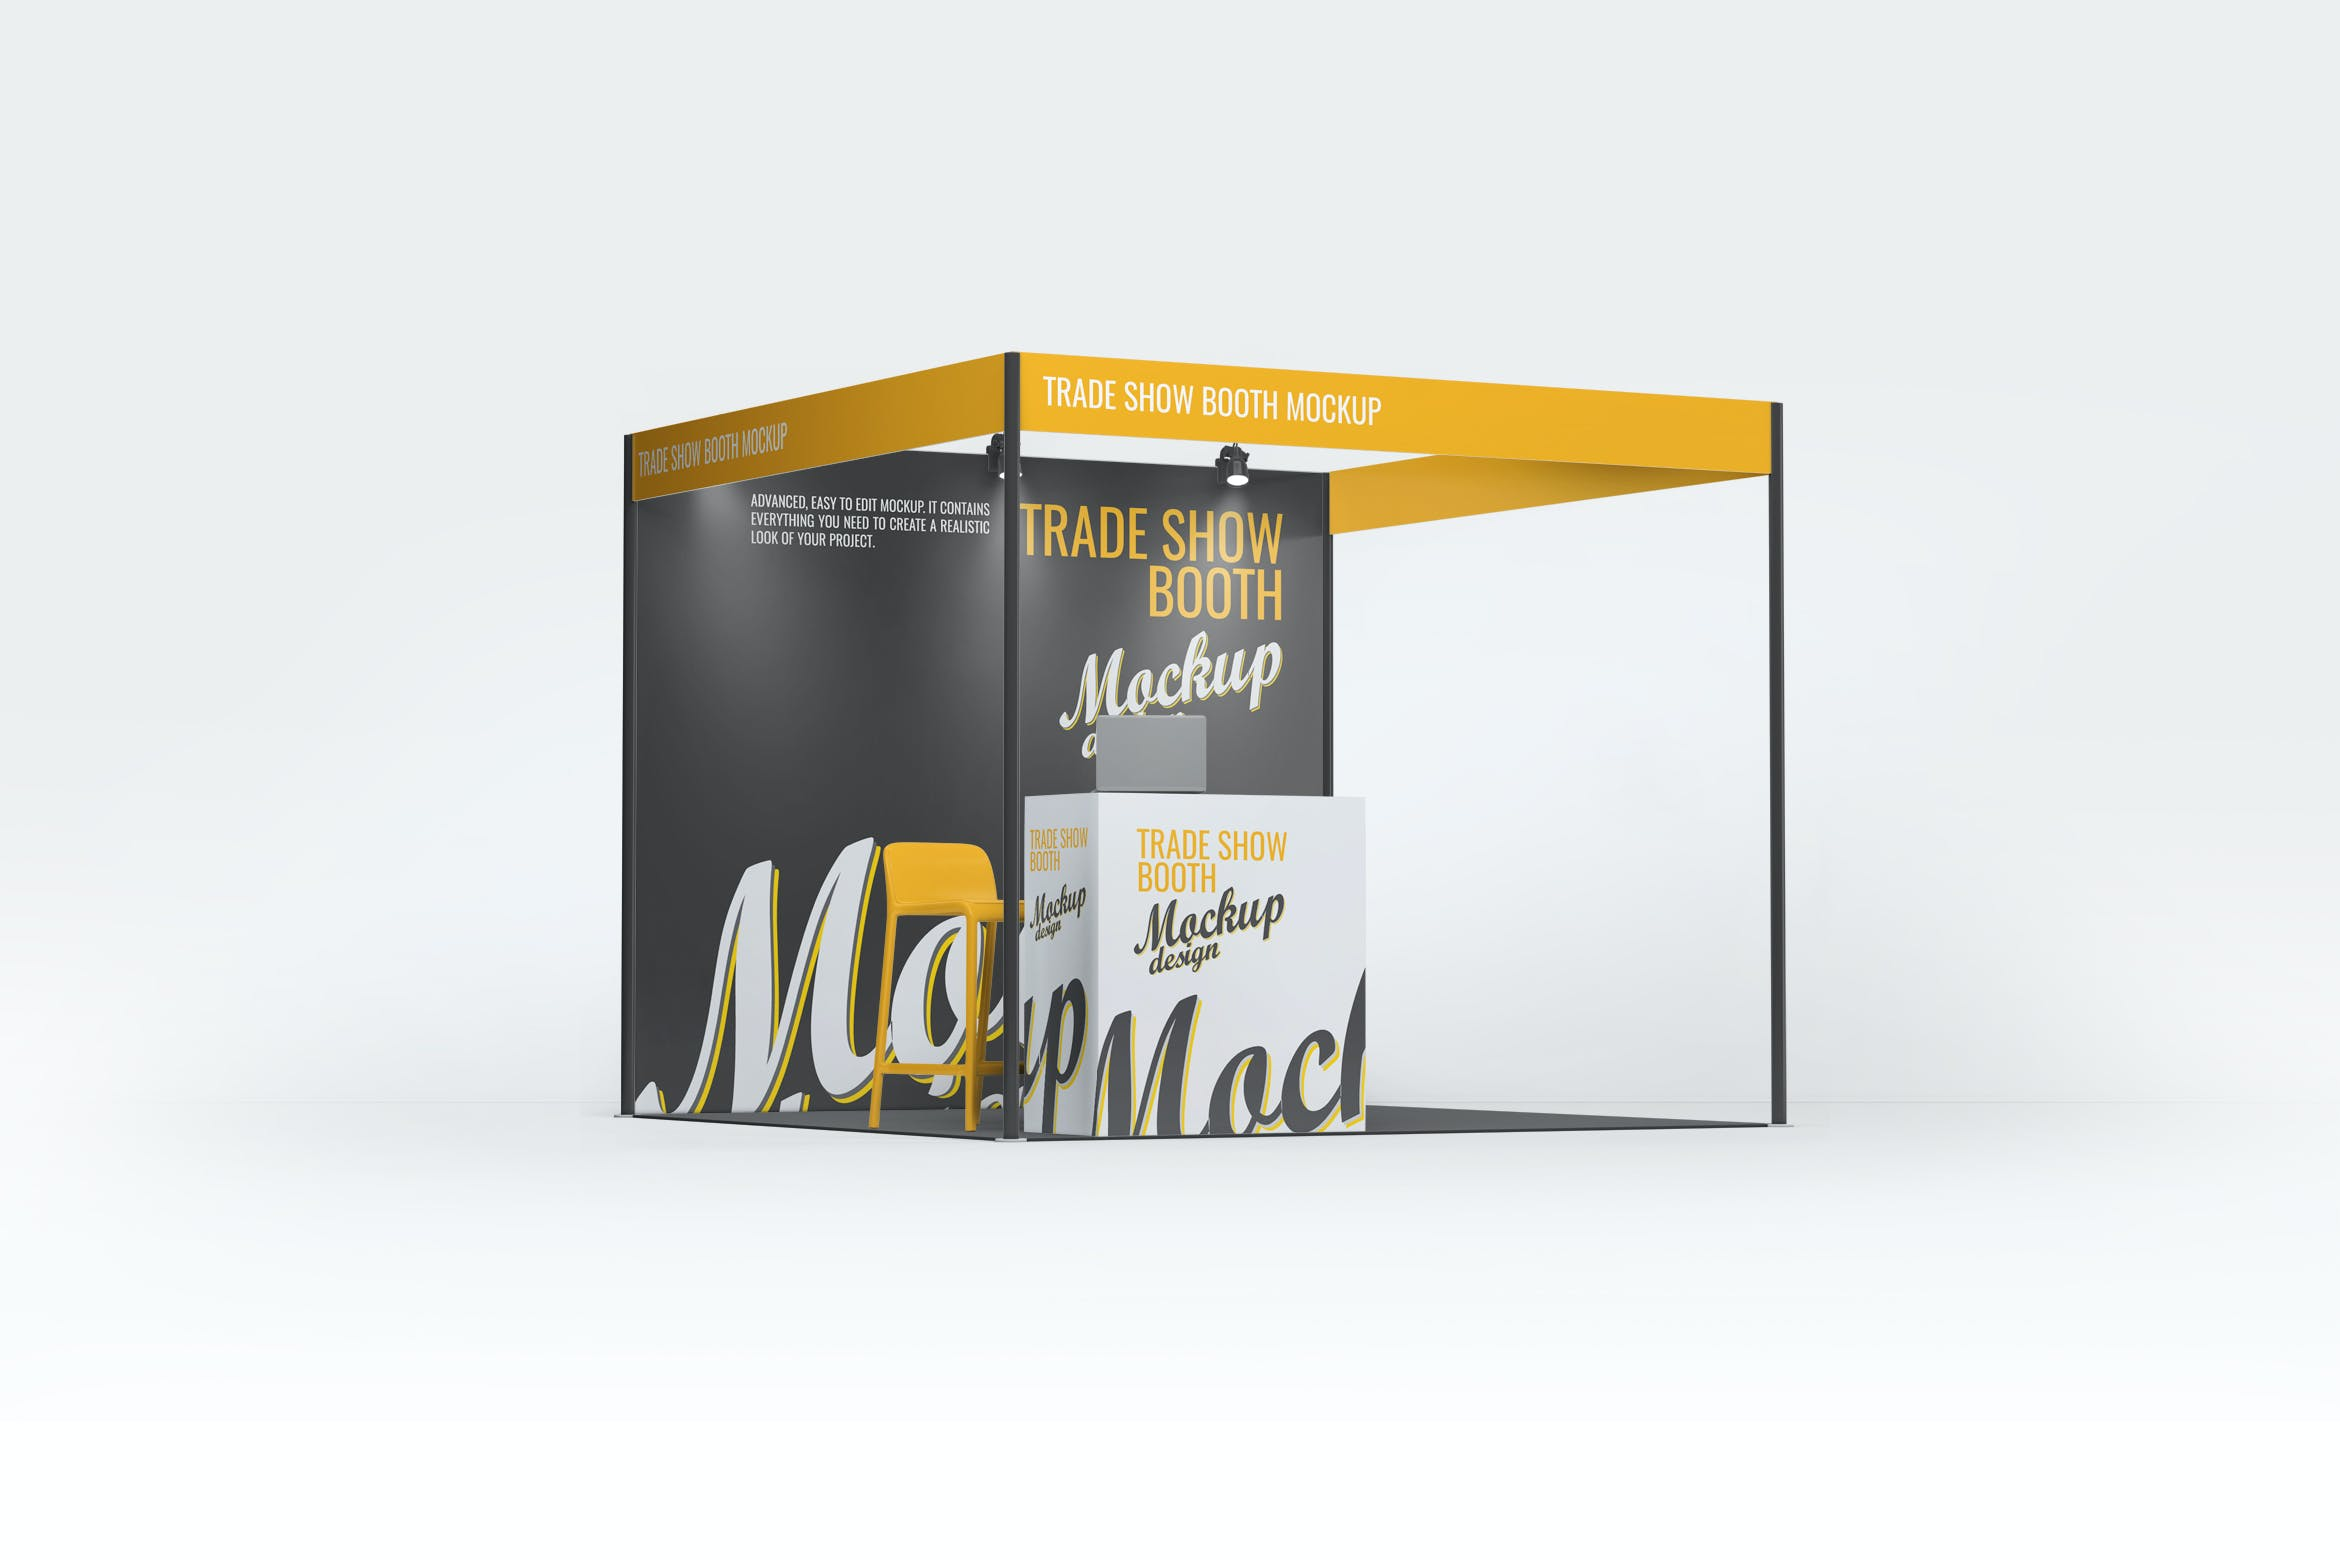 Trade Show Booth Mock Up By L5design On Envato Elements